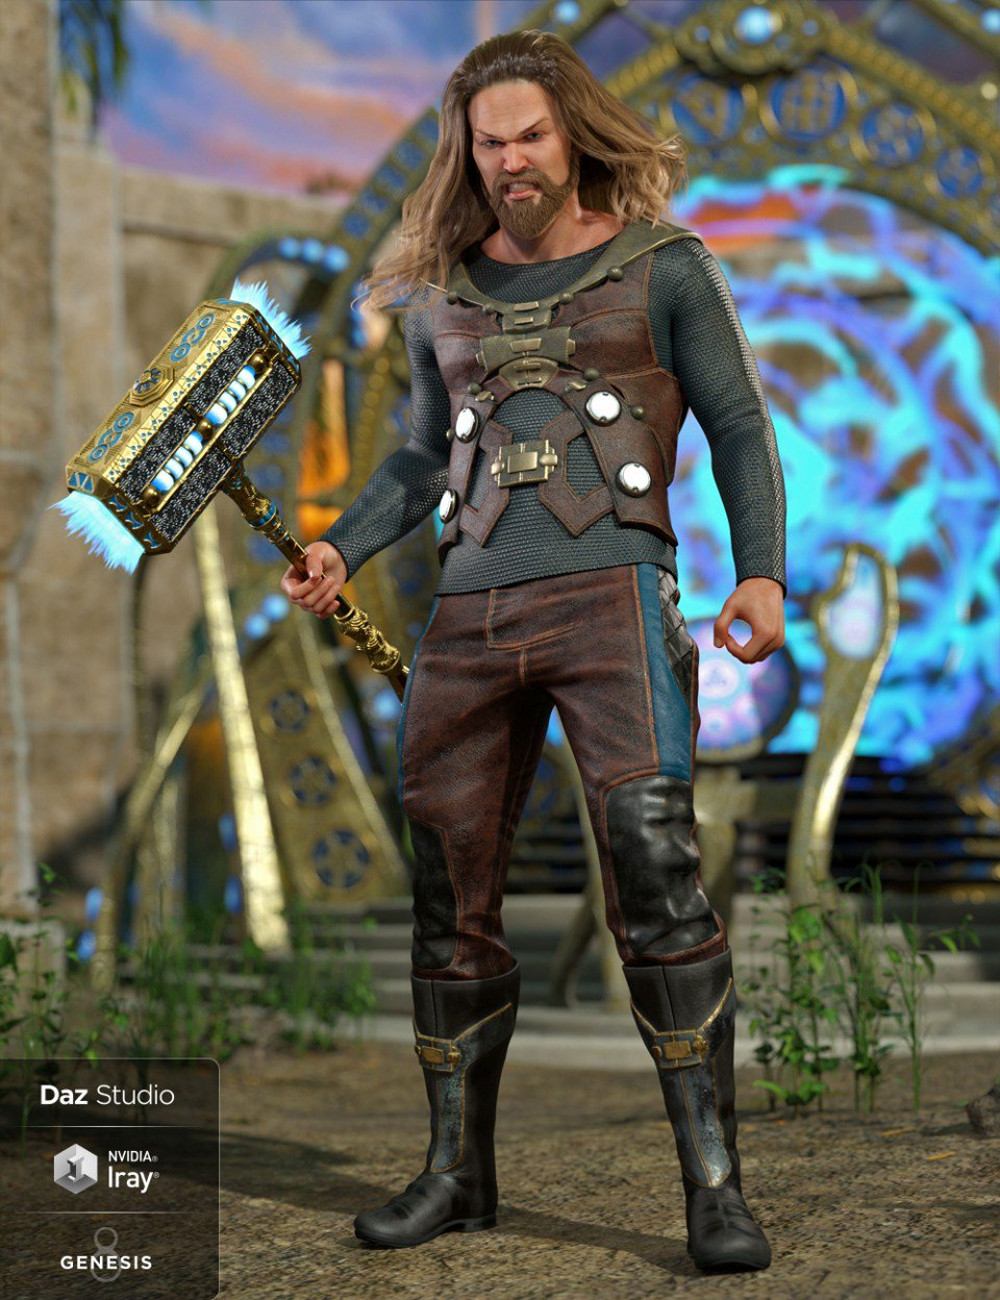 Thor like character holding a hammer